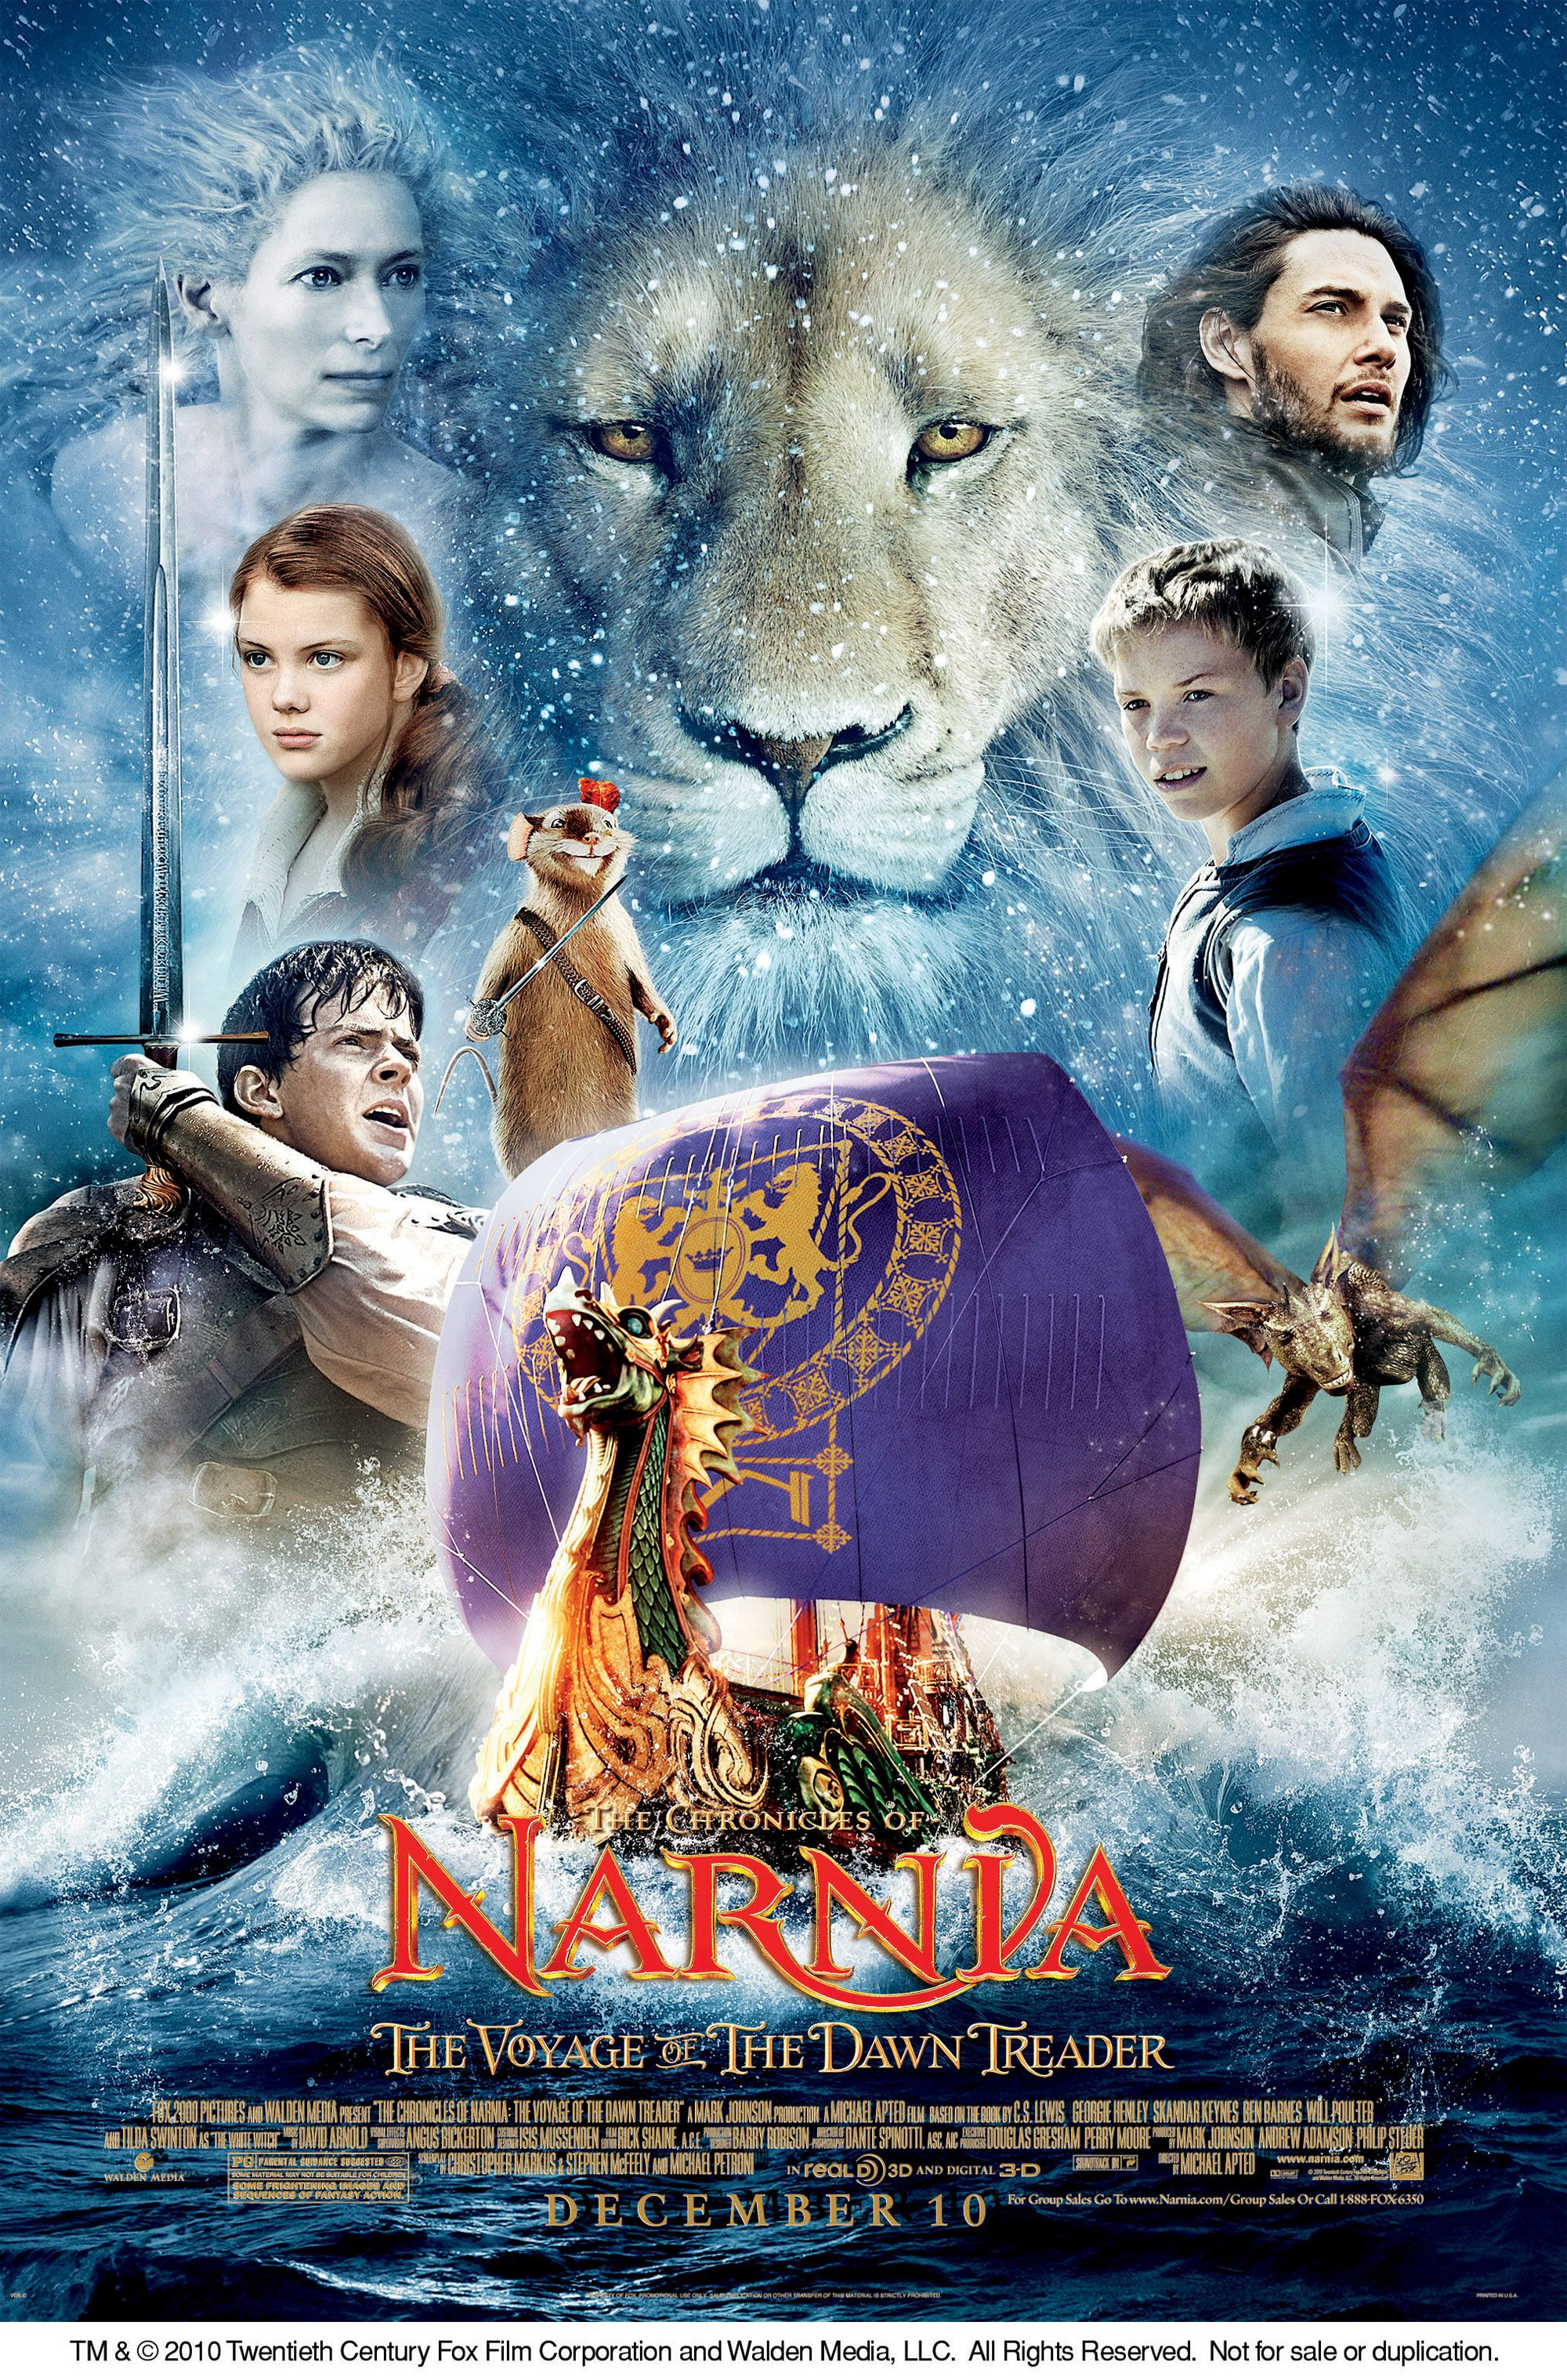 The silver chair bbc - Narnia The Voyage Of The Dawn Treader Movie